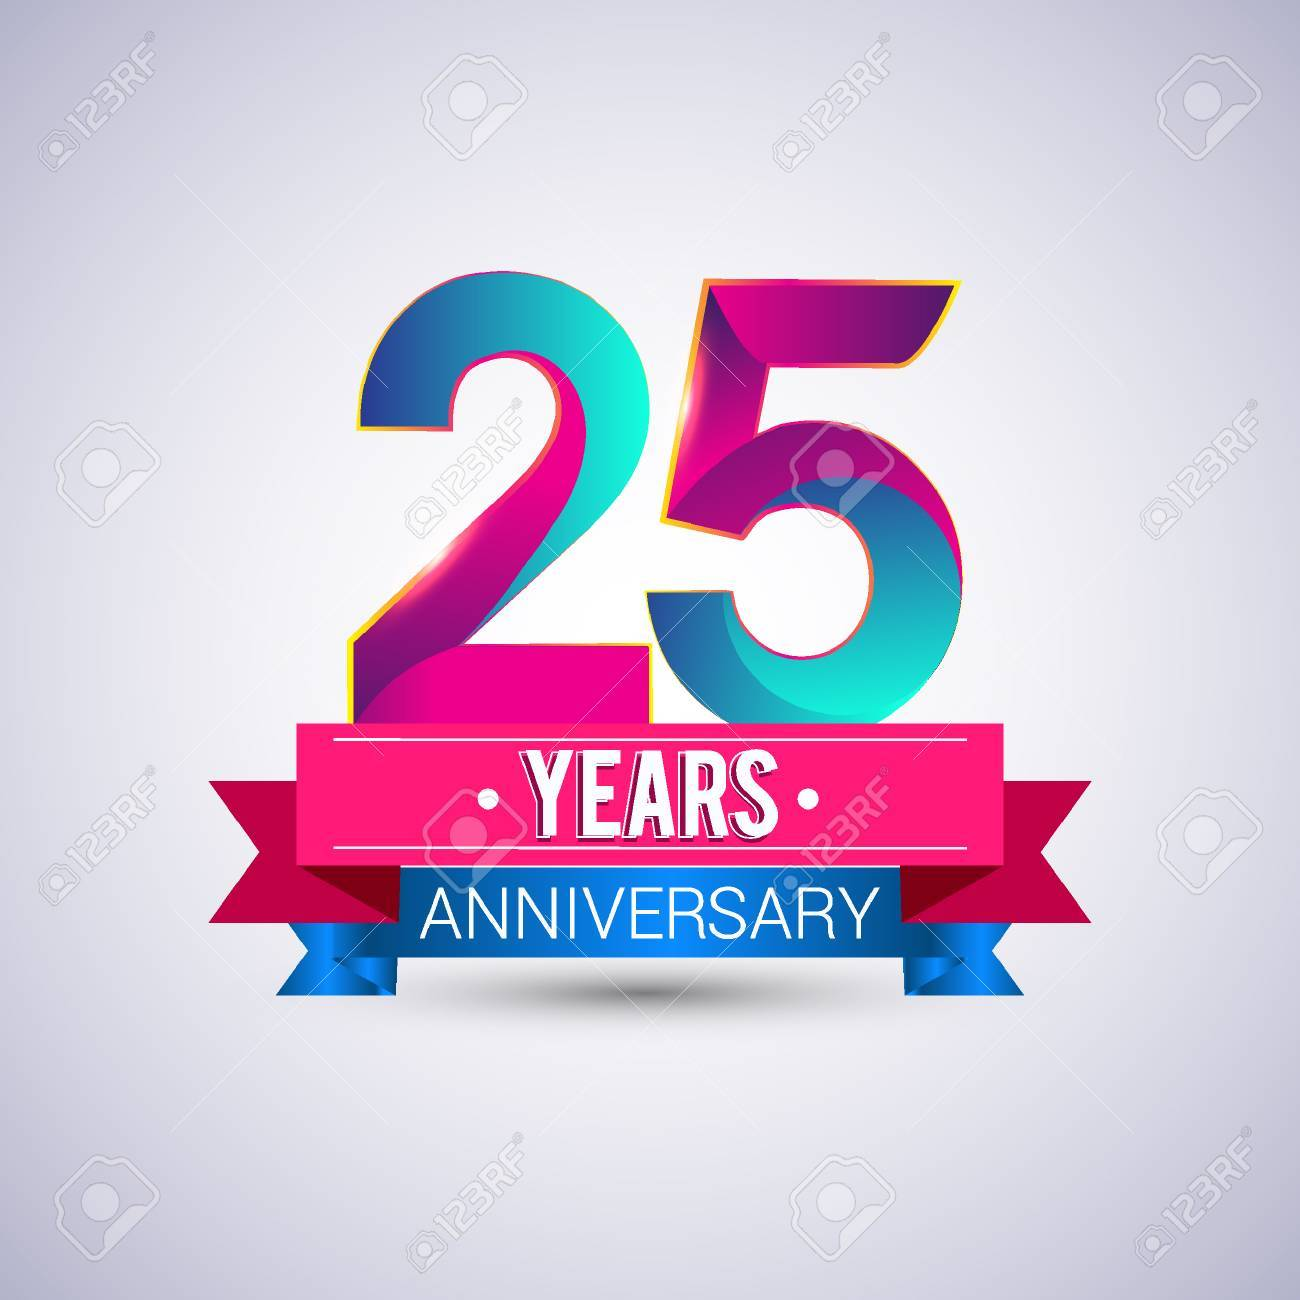 25 years anniversary logo blue and red colored vector design 25 years anniversary logo blue and red colored vector design stock vector 74493393 altavistaventures Image collections